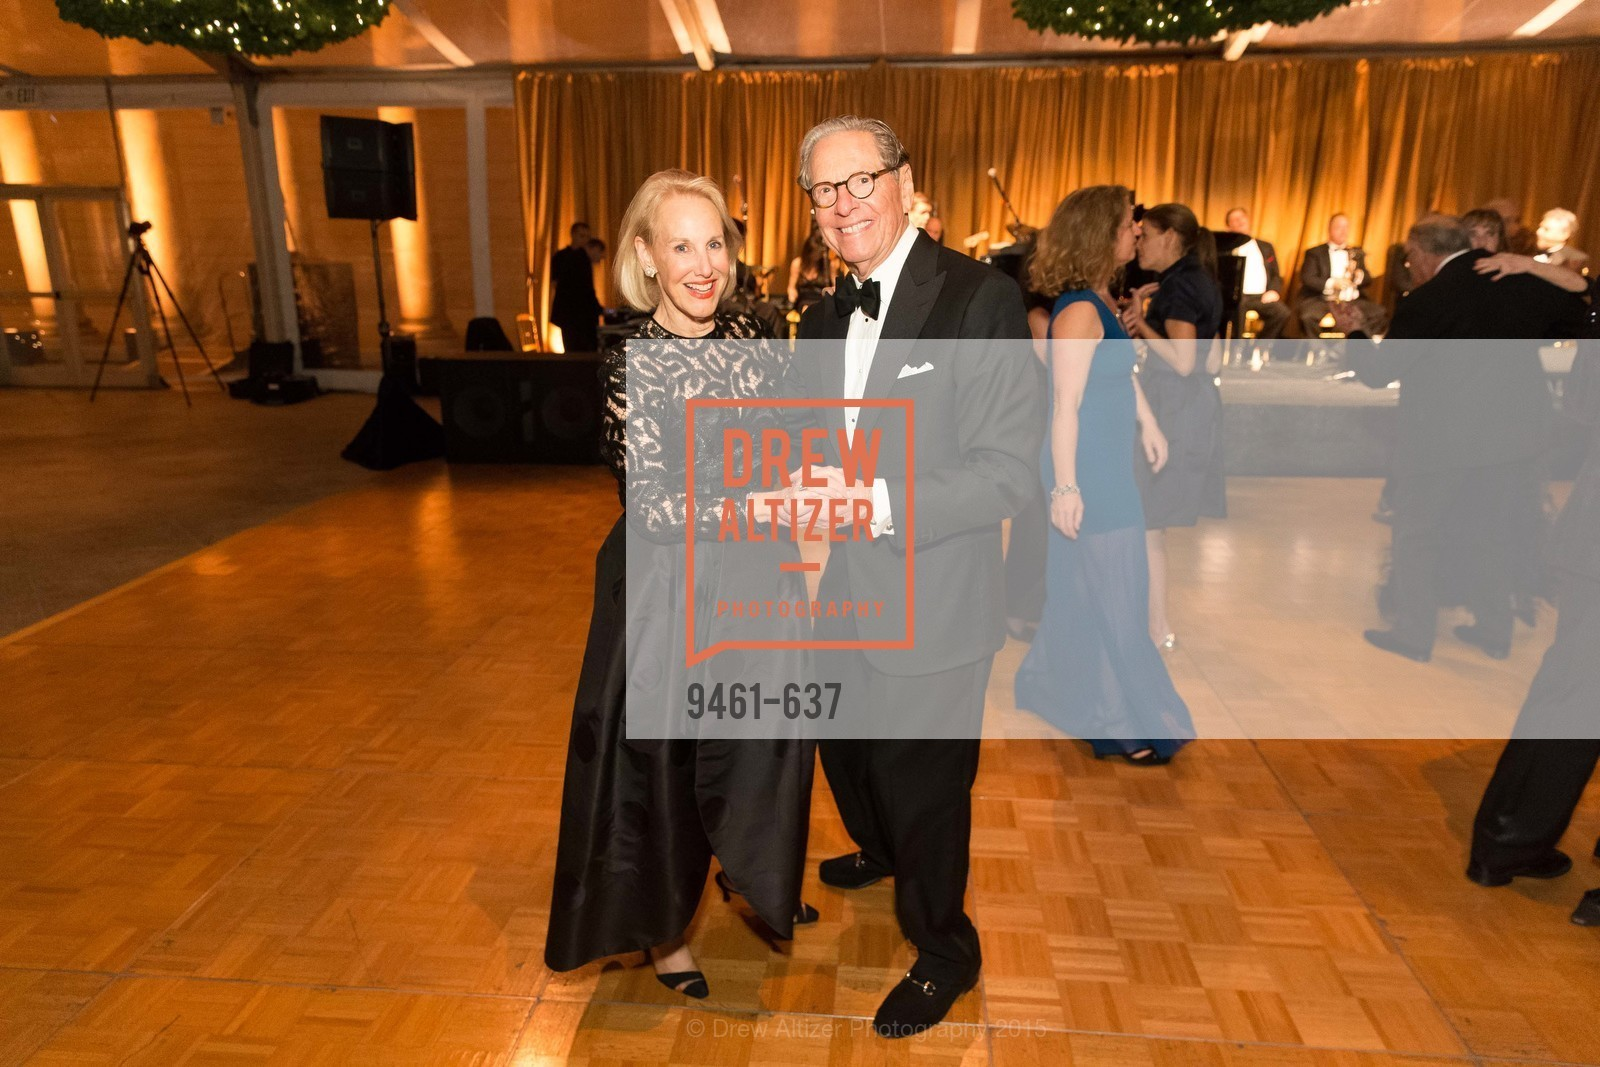 Alex Leitstein, Bob Leitstein, AN ELEGANT EVENING Presented by the Fine Arts Museums of San Francisco, Legion of Honor, Court of Honor. 100 34th Ave, December 8th, 2015,Drew Altizer, Drew Altizer Photography, full-service agency, private events, San Francisco photographer, photographer california